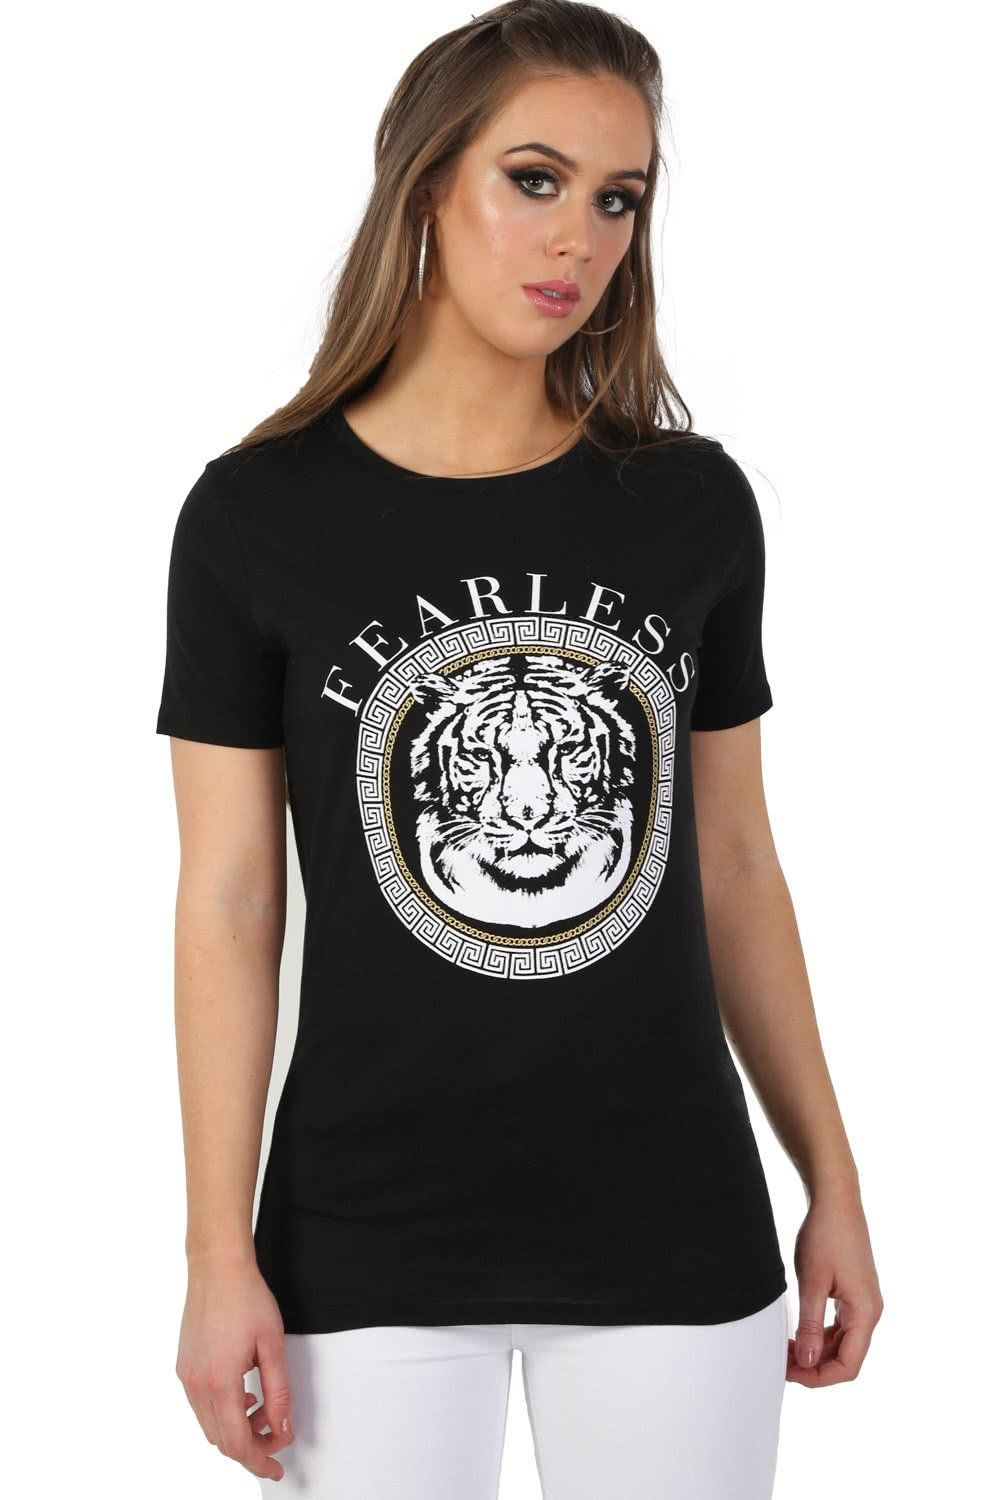 Fearless Slogan Print Tiger Motif Short Sleeve T-Shirt in Black 0